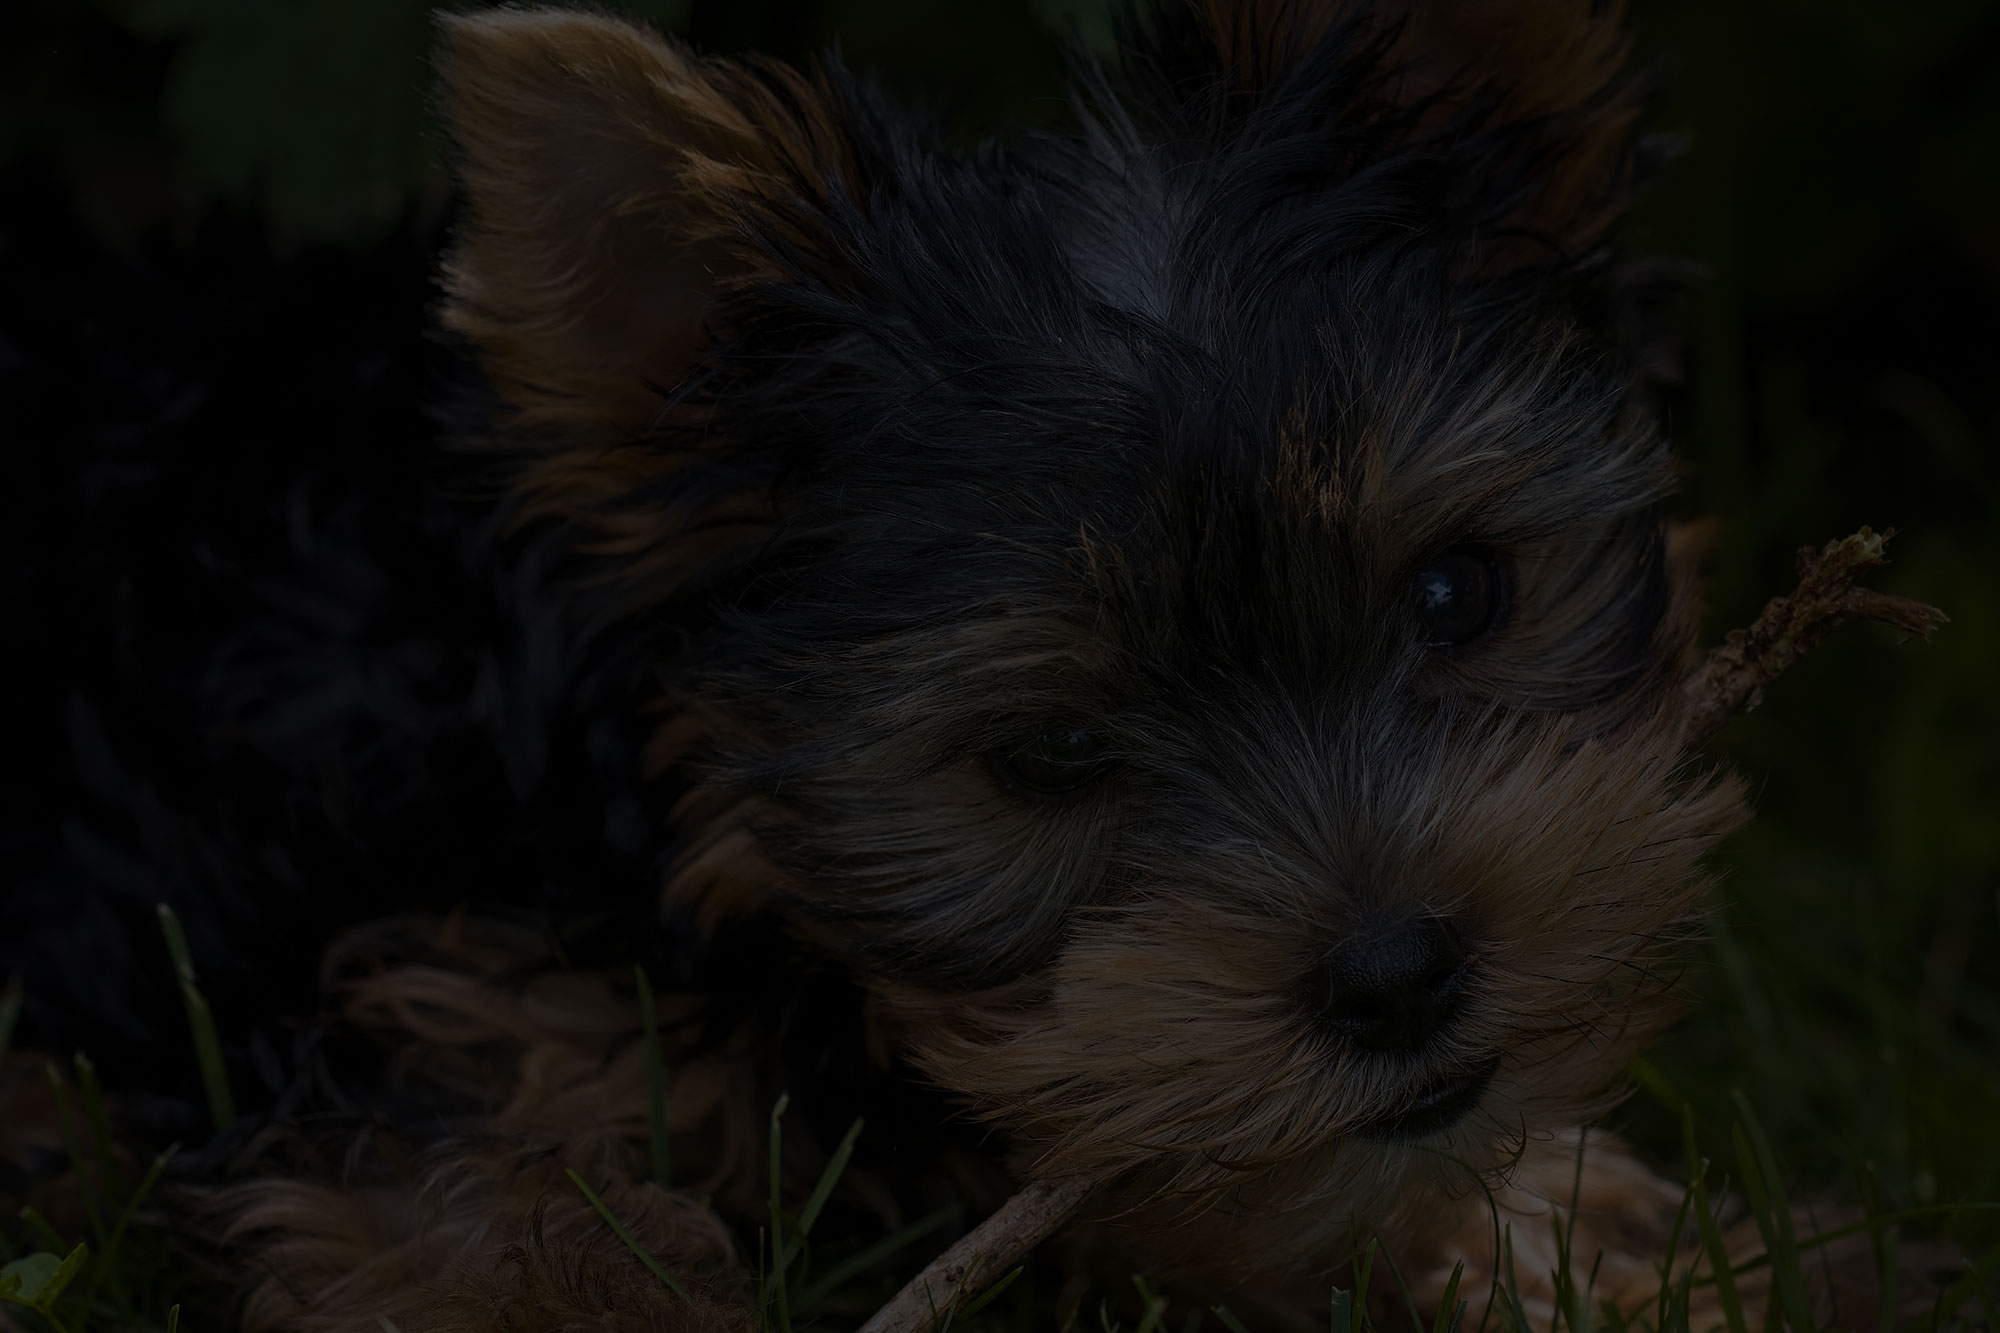 morkie puppy playing with wooden stick